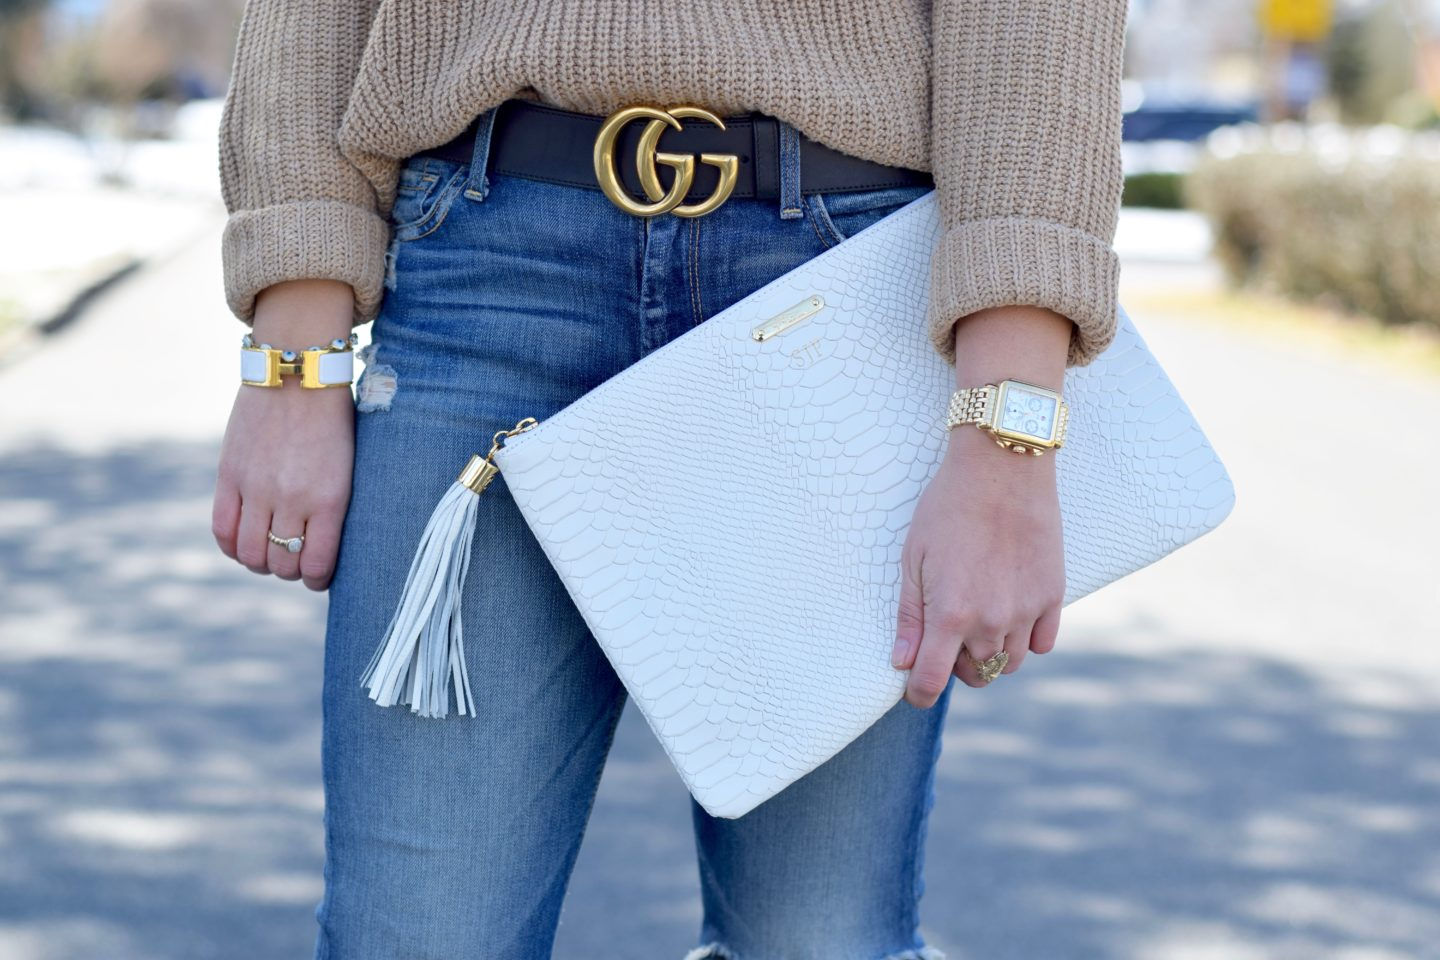 blogger-gigi new york-uber clutch-style